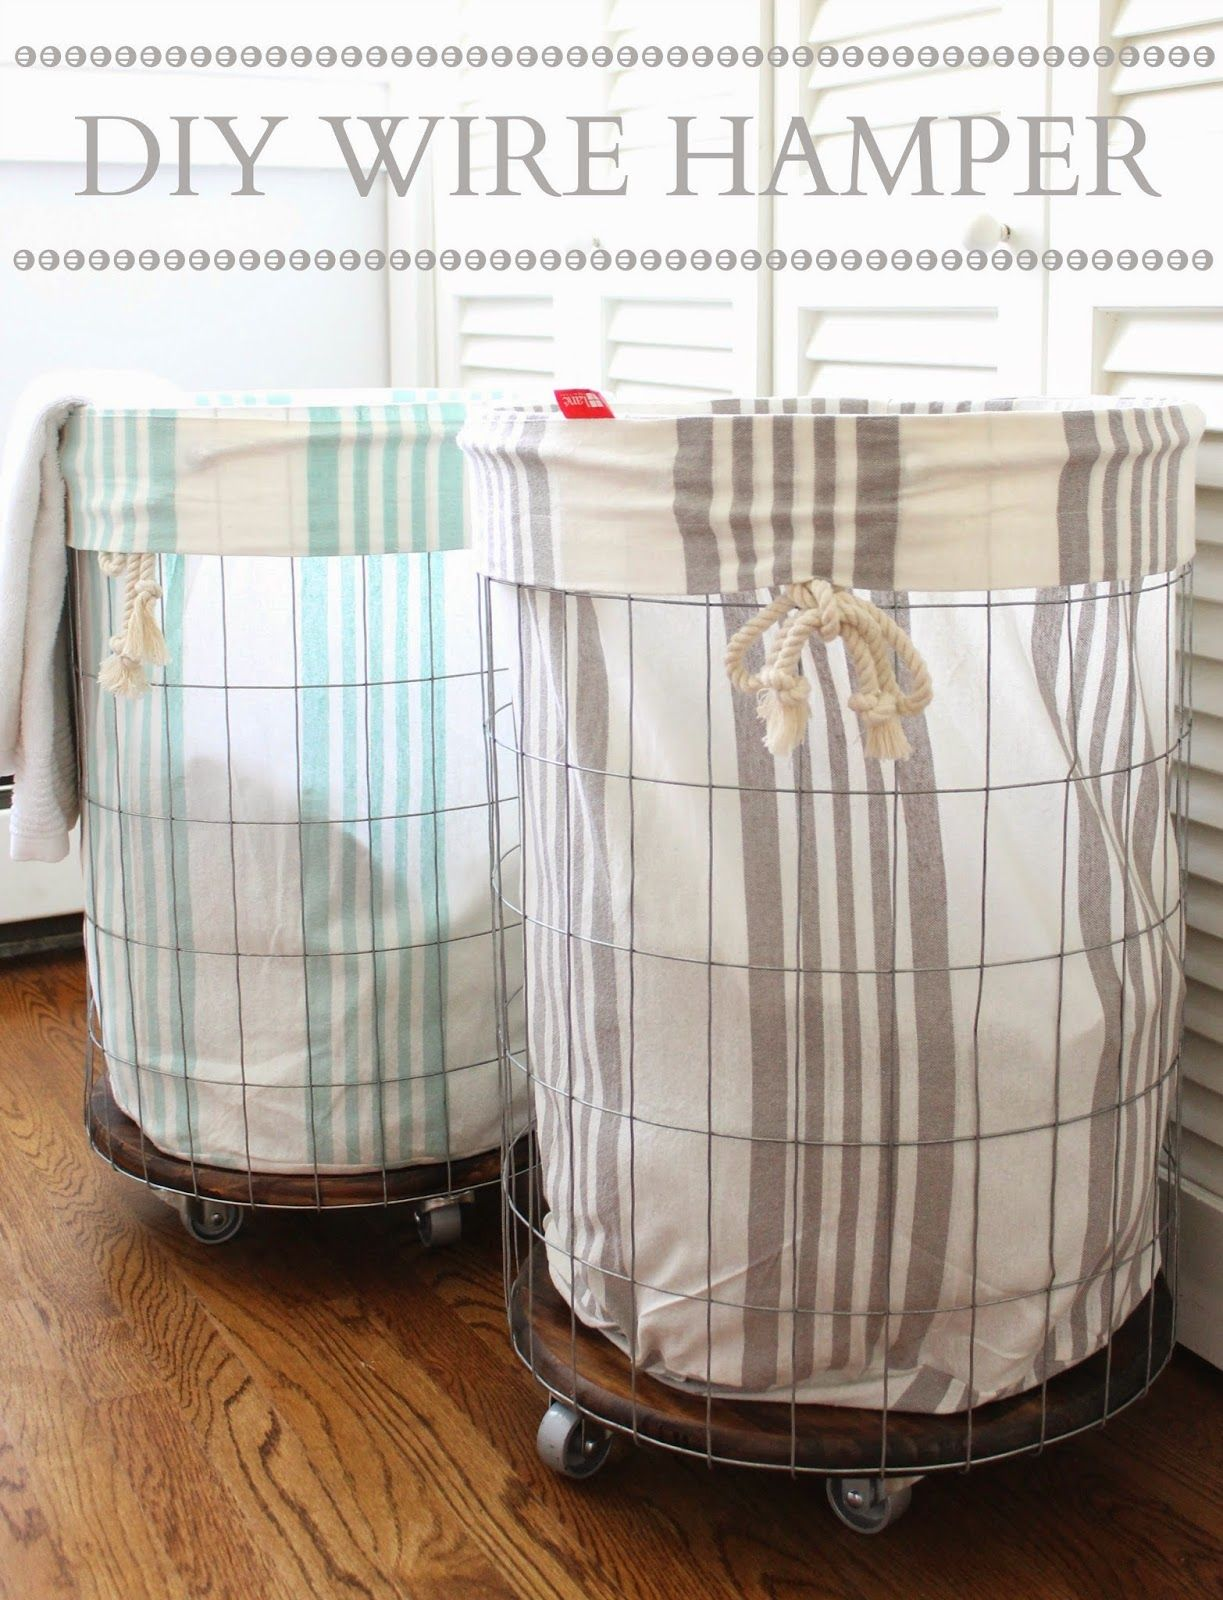 Airing our dirty laundry and DIY hamper the picket fence projects